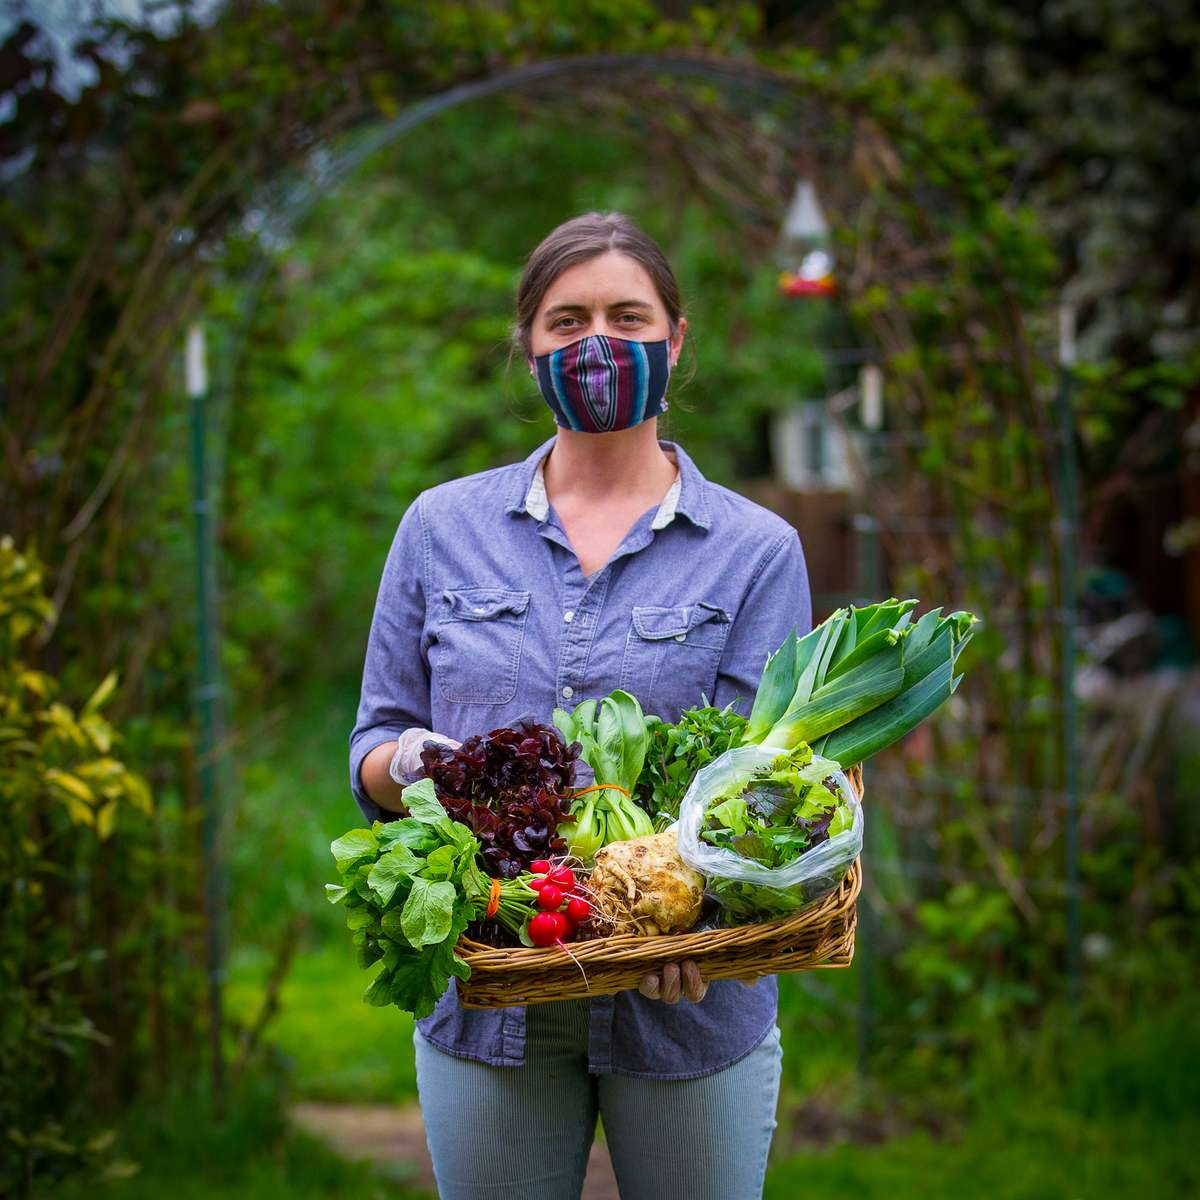 Shelley Bowerman holds a Spring Veggies assortment to be delivered to a CSA member of Moondog's Farm in Eugene. Bowerman has also started Lane County Bounty, an online marketplace for local goods that she had in the works before the coronavirus pandemic. {quote}I wanted to create a place where all of the local farmers could showcase what they do best and where the consumer could find everything that they need,{quote} Bowerman said.  [Andy Nelson/The Register-Guard] - registerguard.com